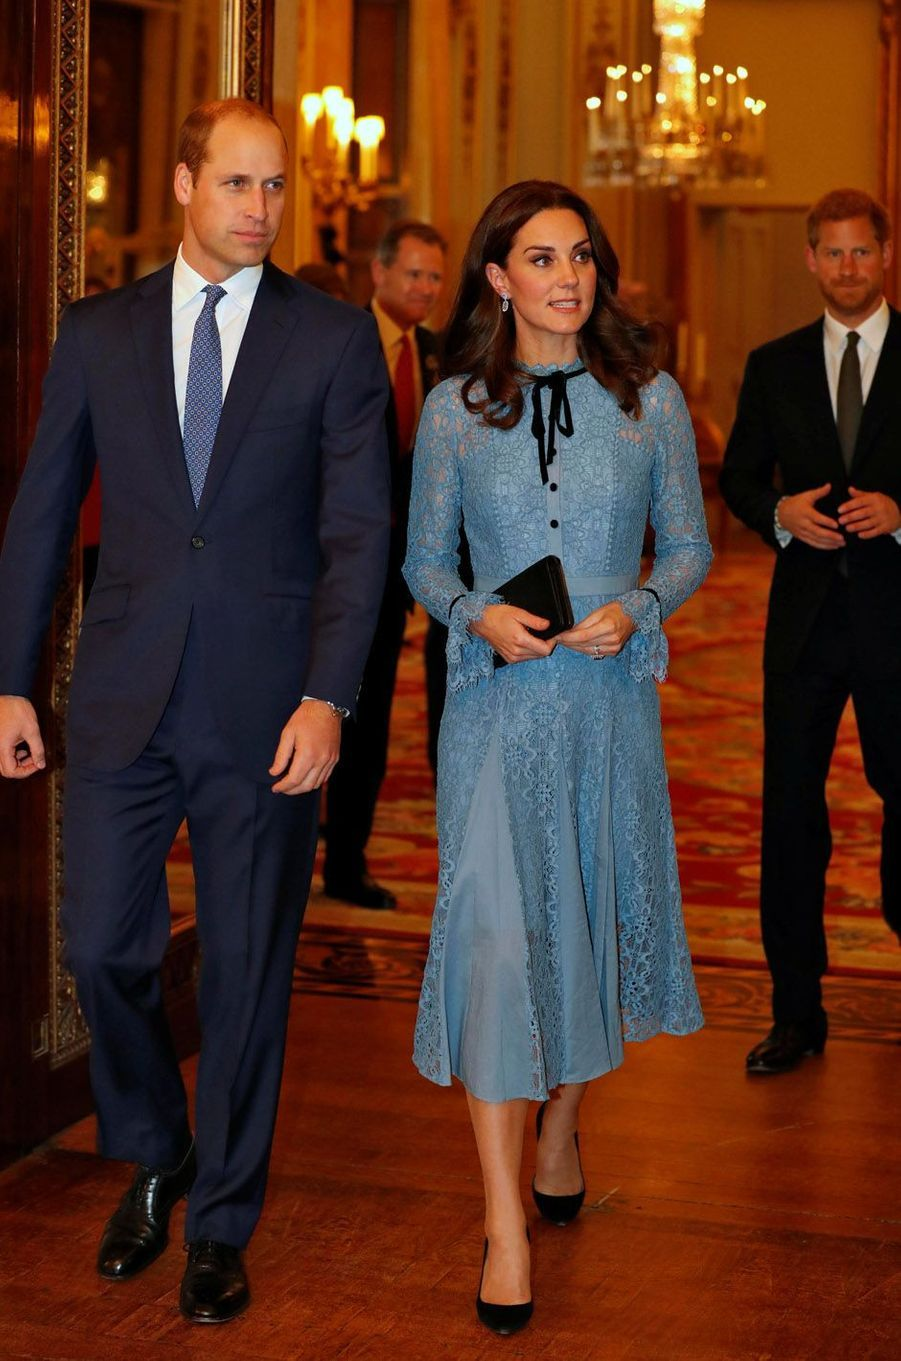 La duchesse de Cambridge en compagnie du prince William.